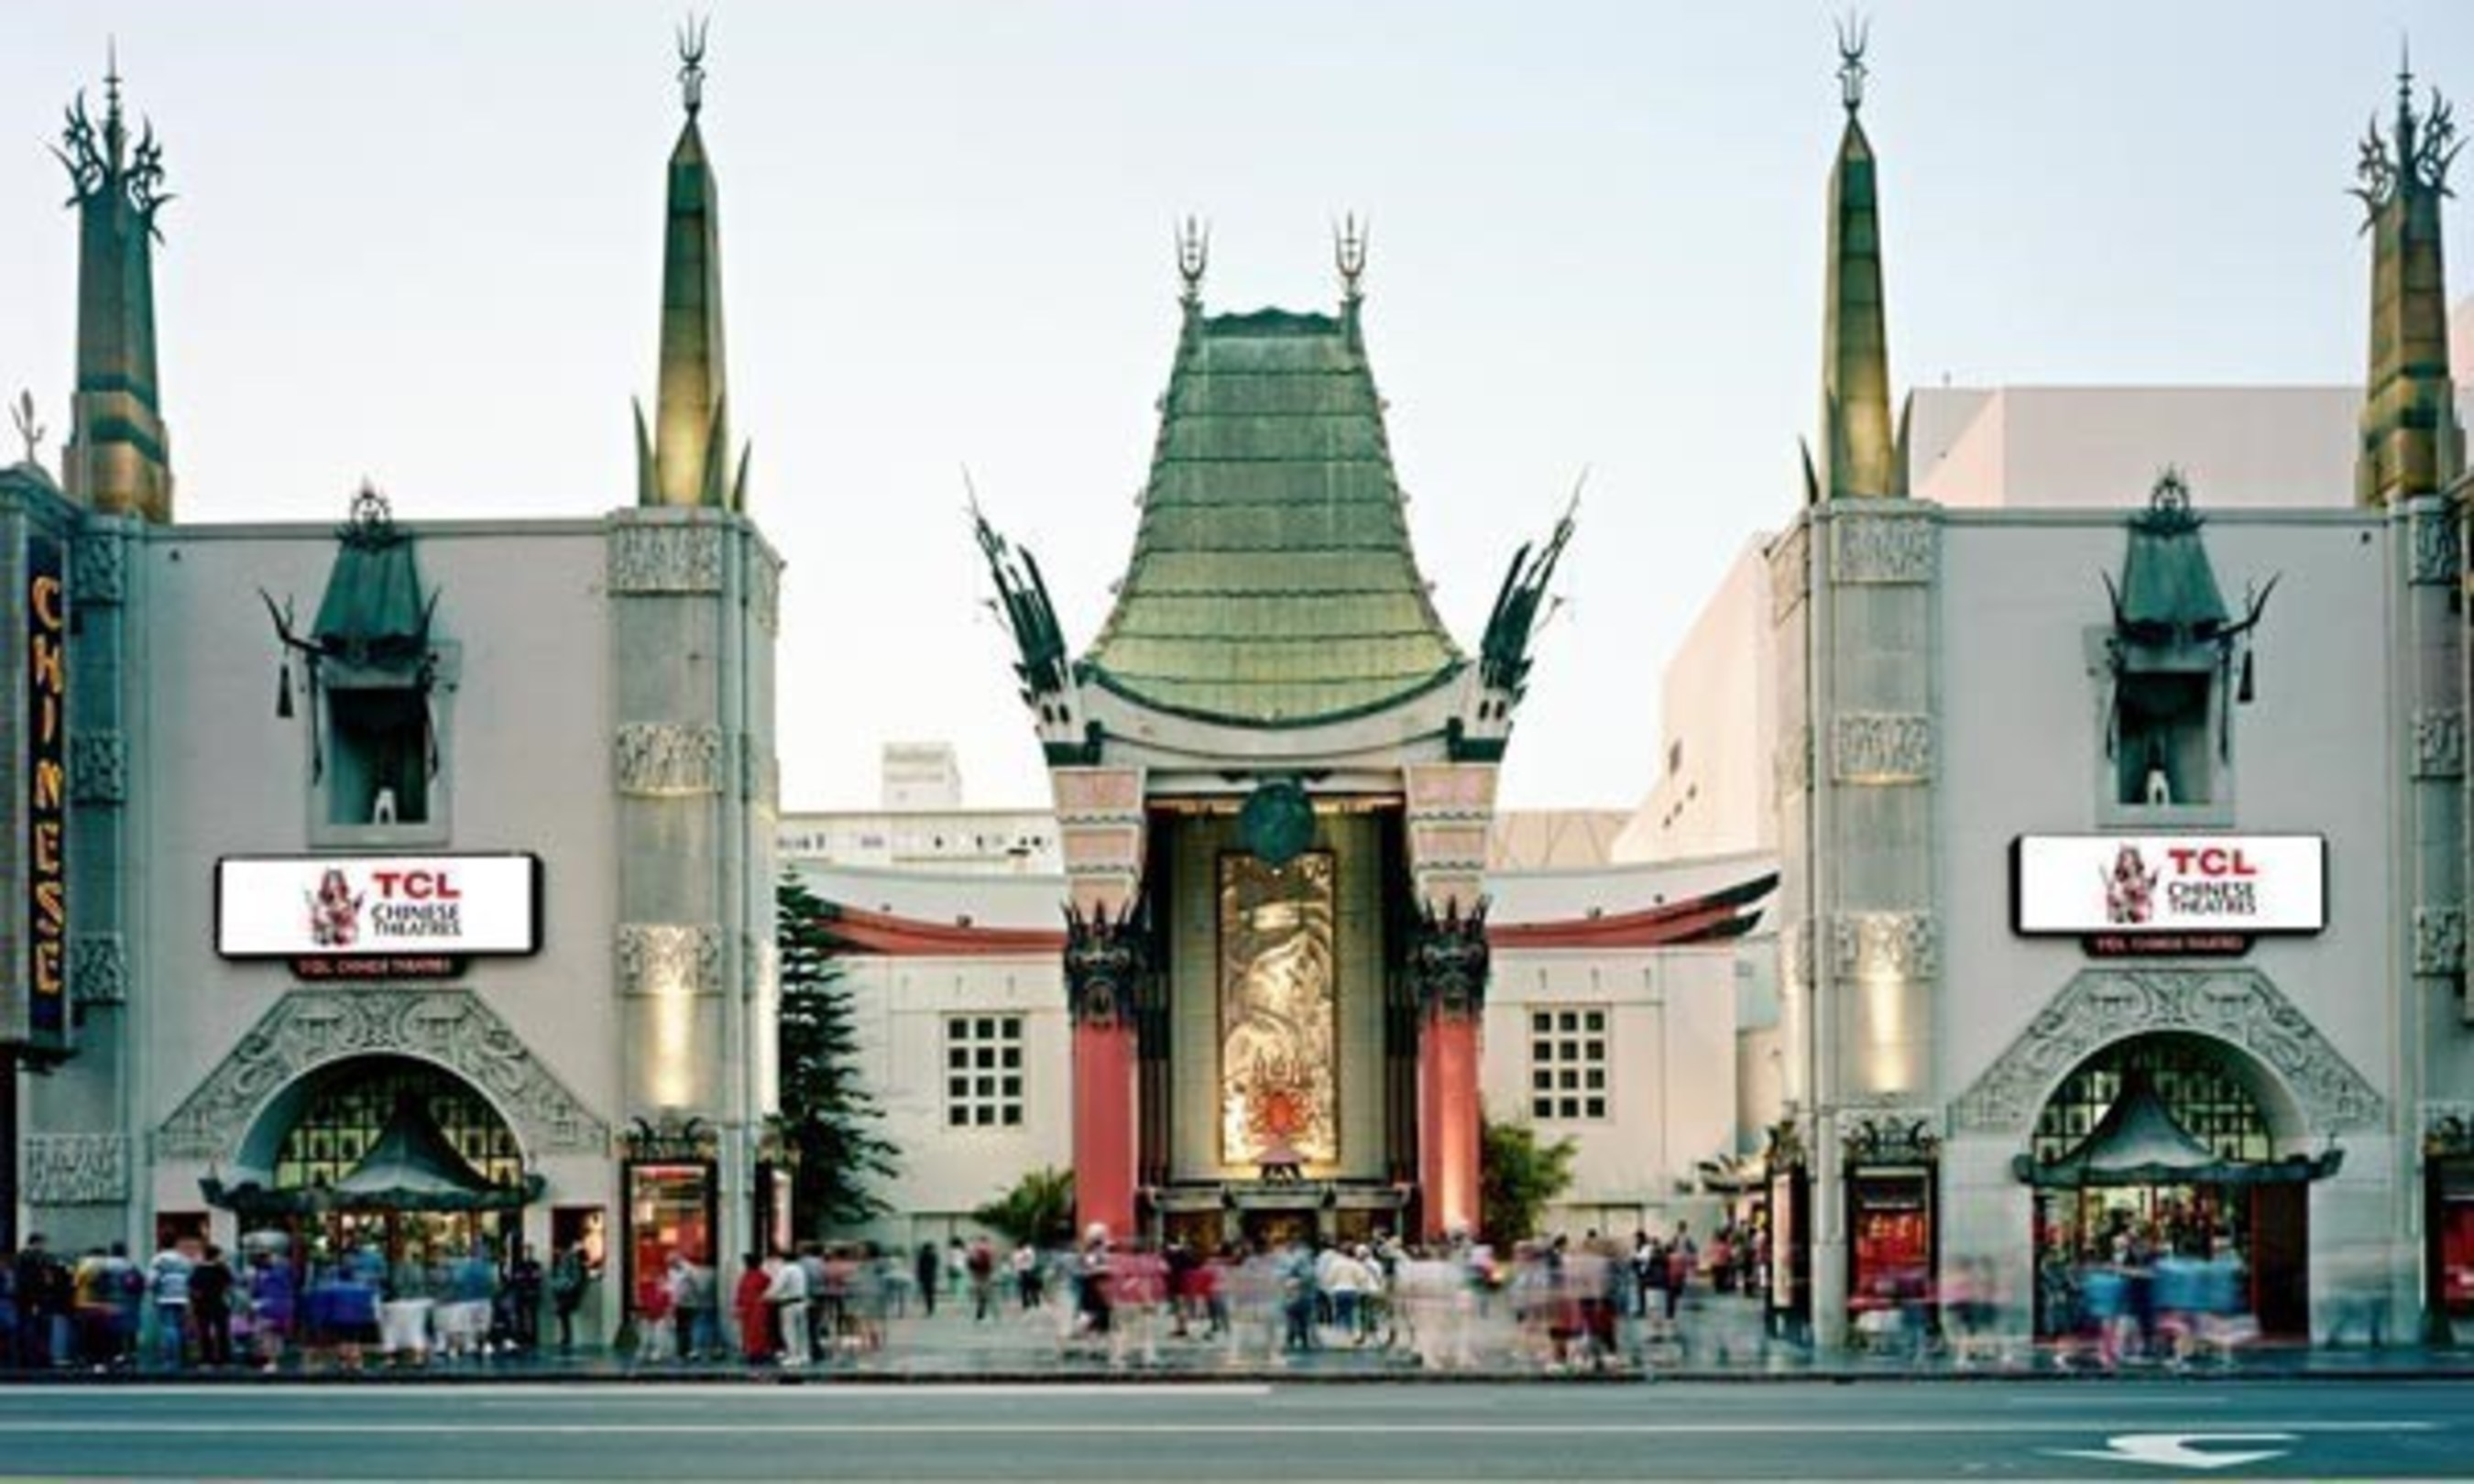 TCL Square opens at the TCL Chinese Theatre